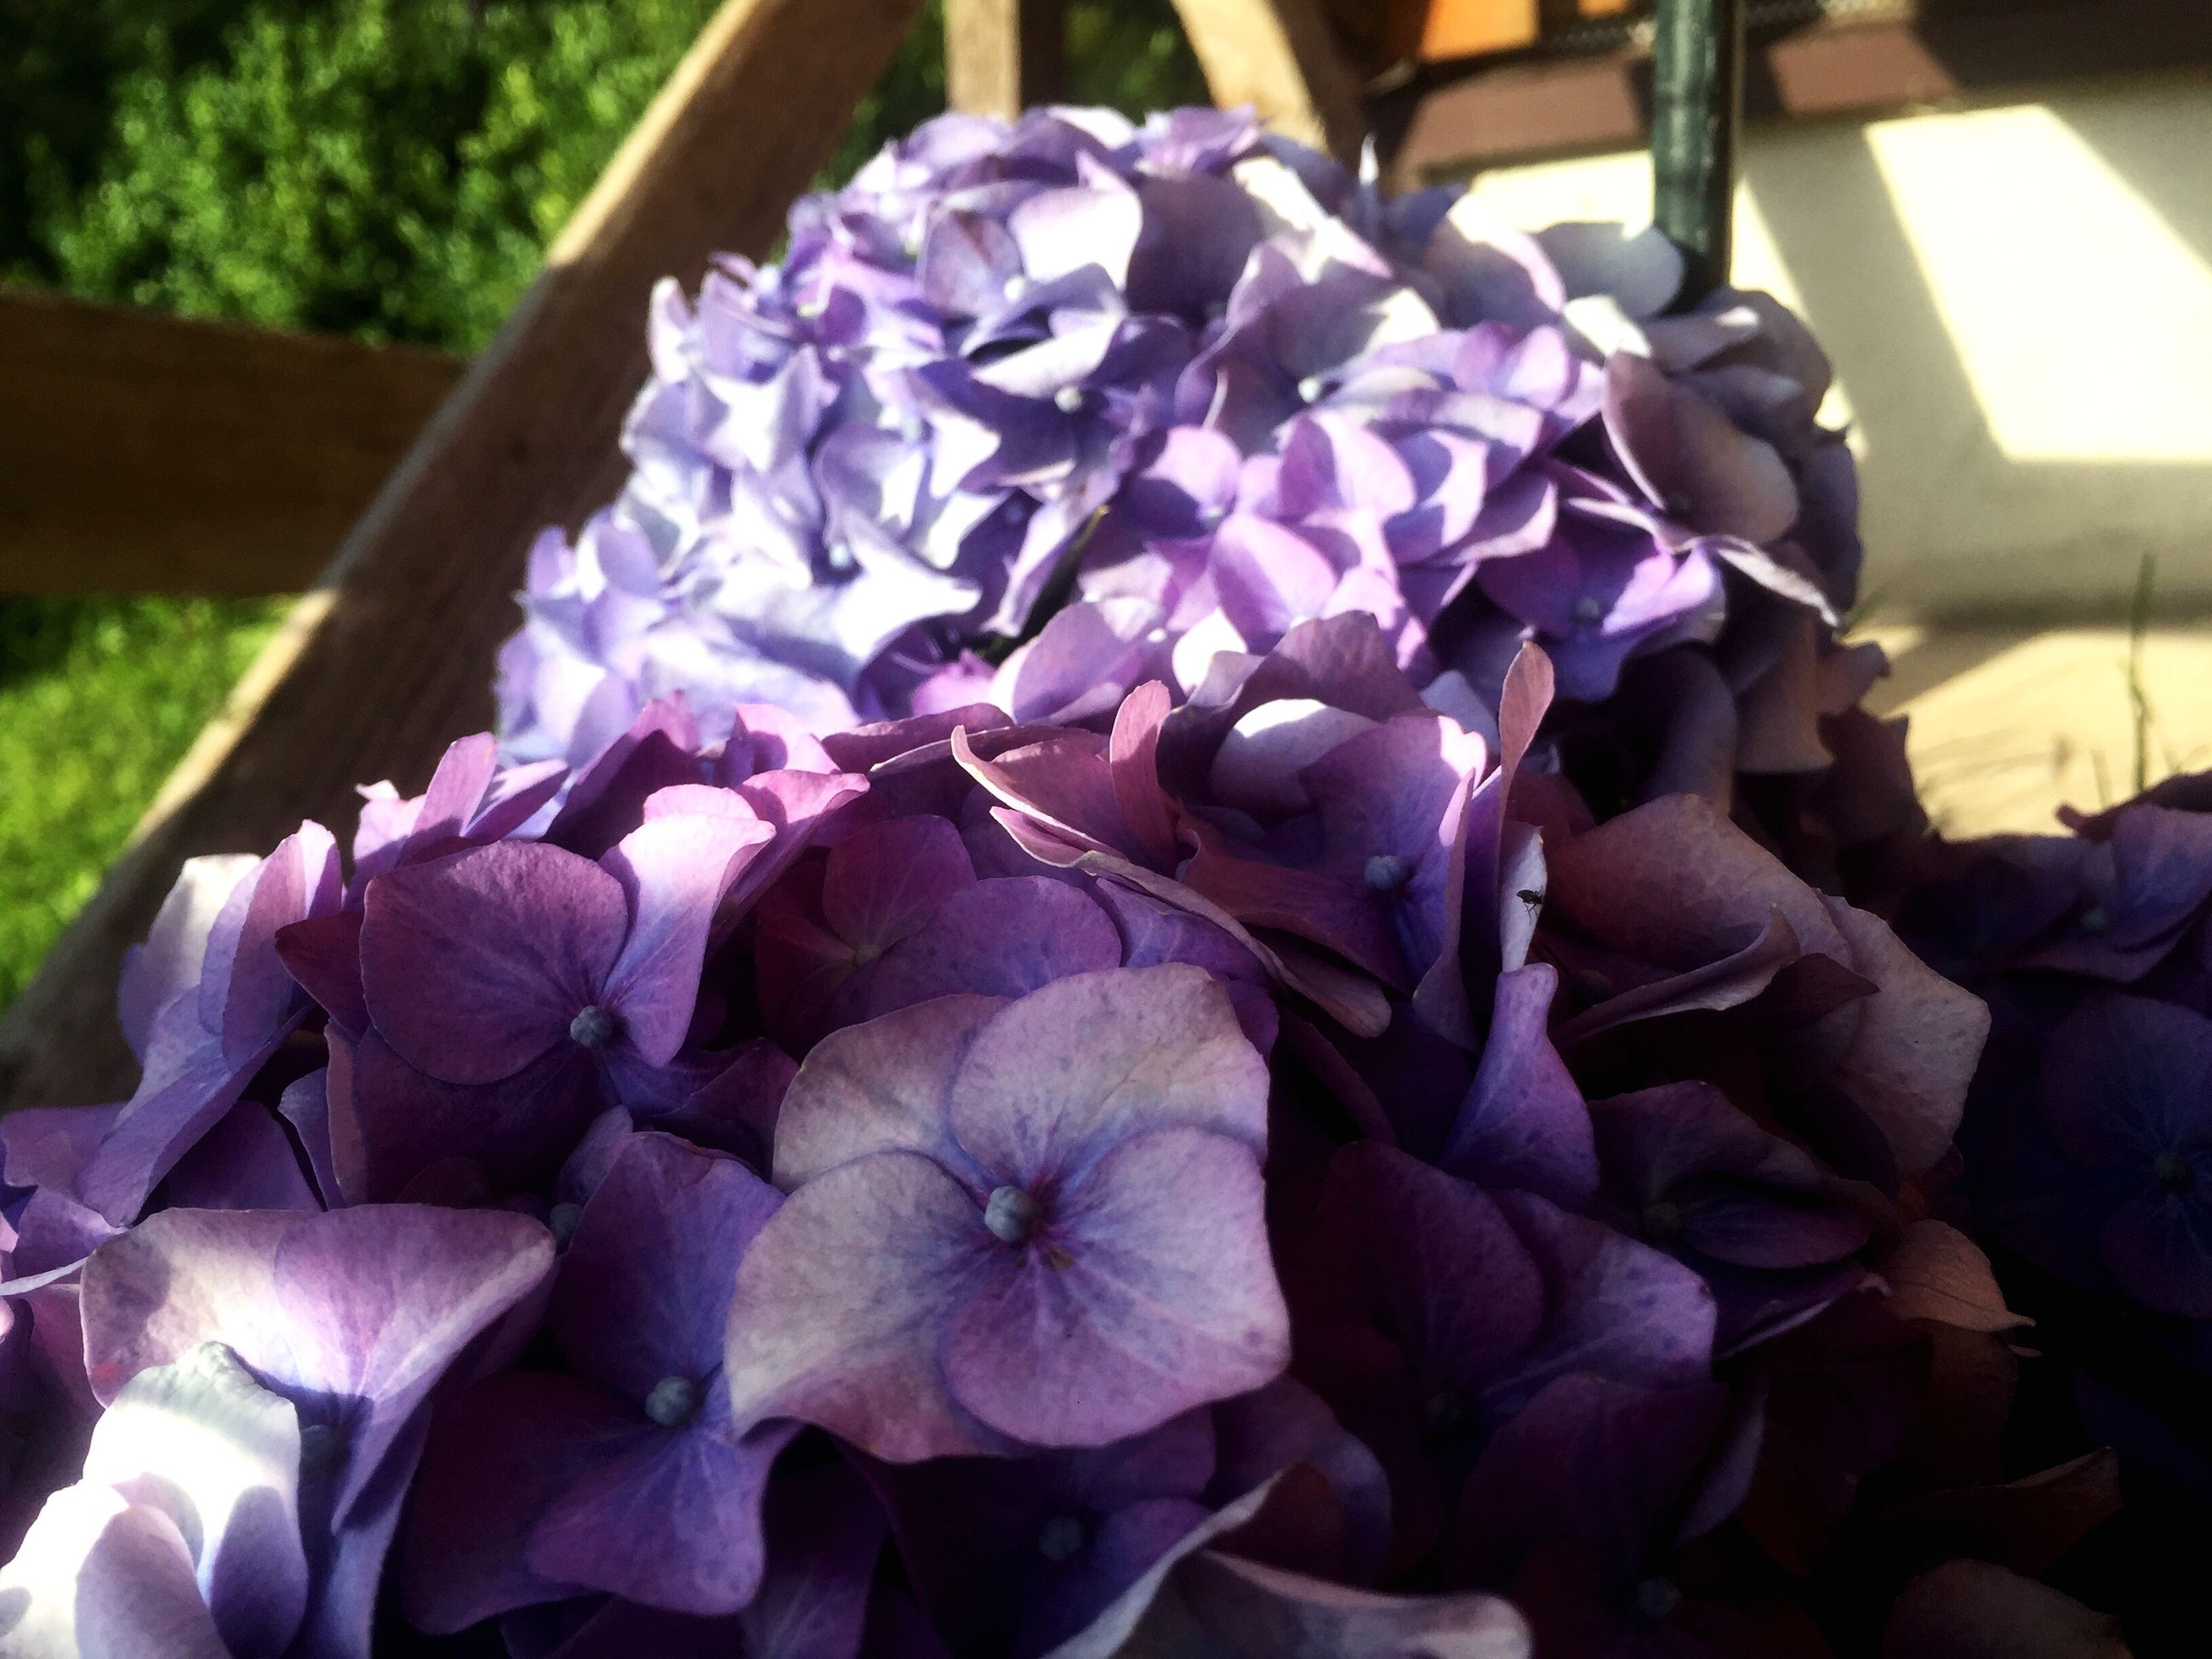 flower, purple, petal, beauty in nature, fragility, nature, growth, freshness, day, flower head, plant, outdoors, sunlight, hydrangea, no people, close-up, blooming, petunia